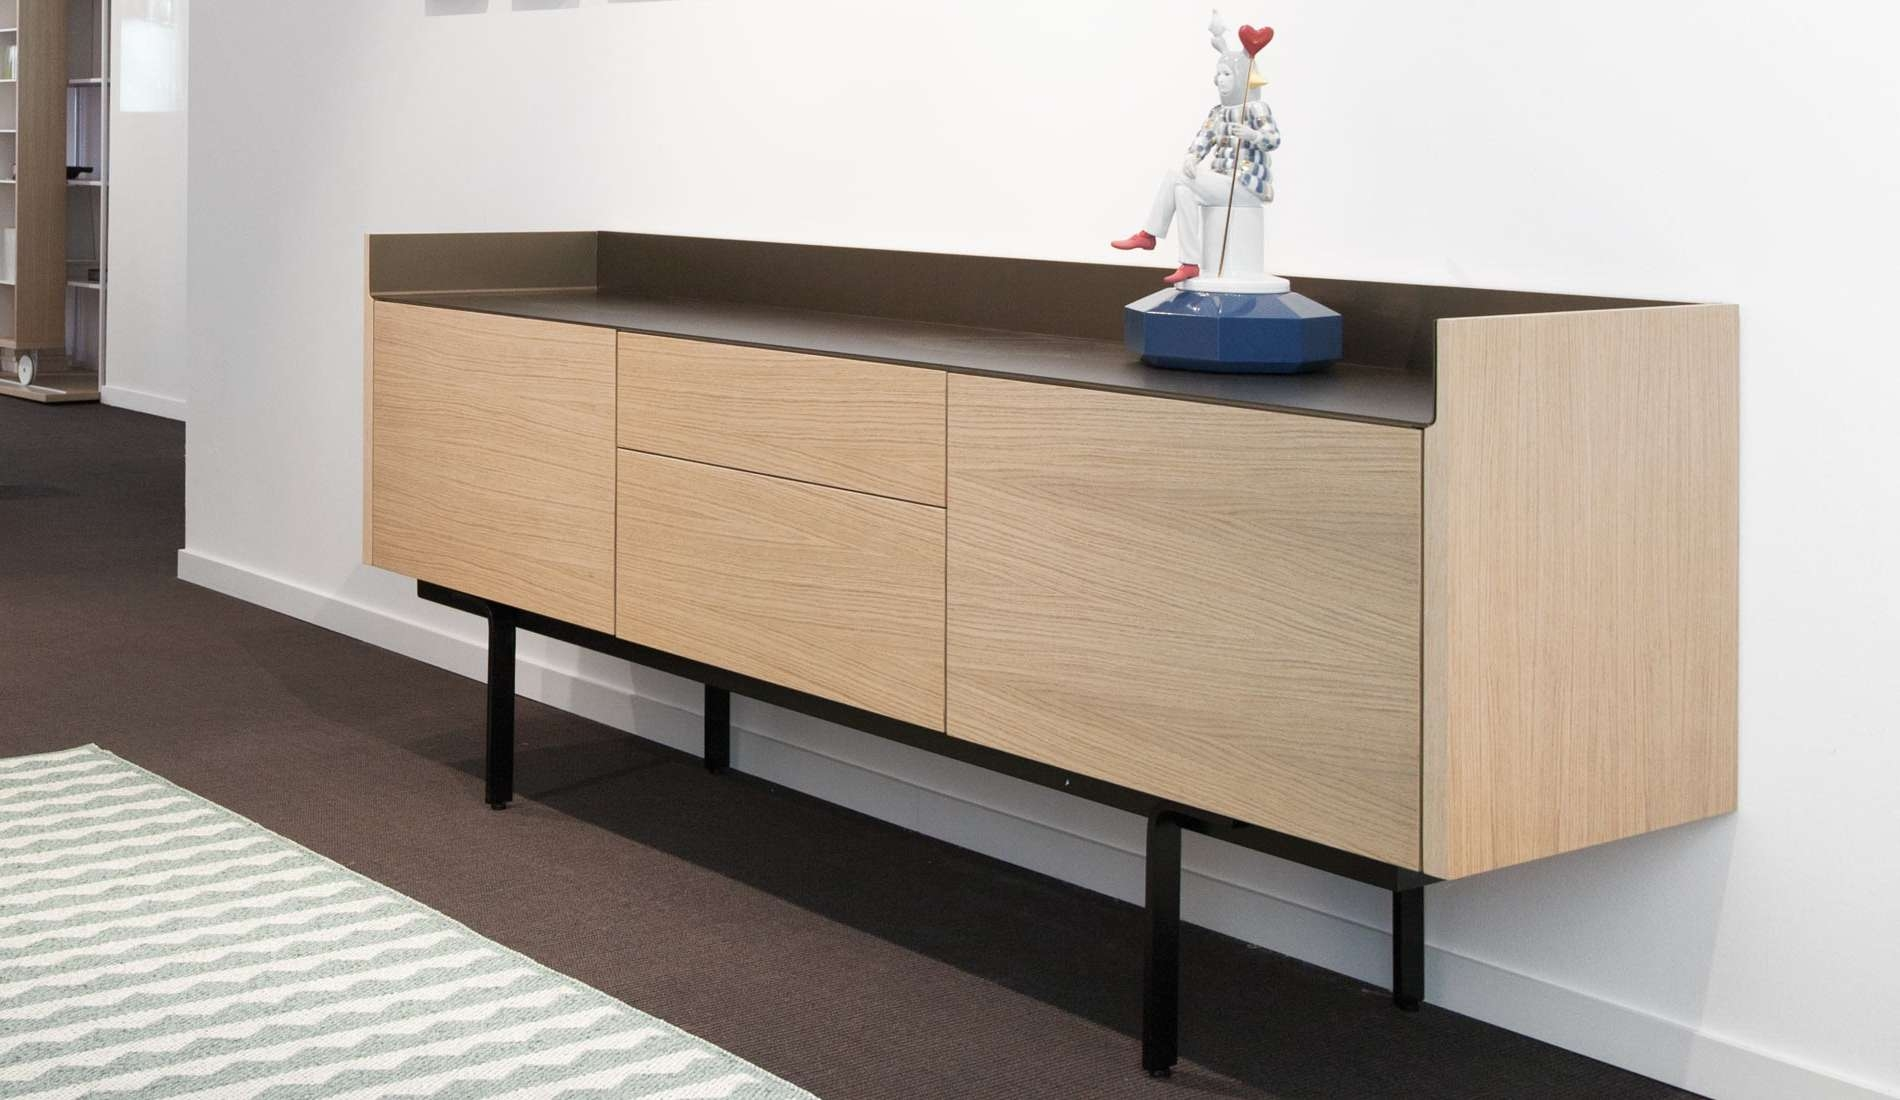 Punt Stockholm 3b Sideboard | Dopo Domani Throughout Stockholm Sideboards (View 6 of 20)